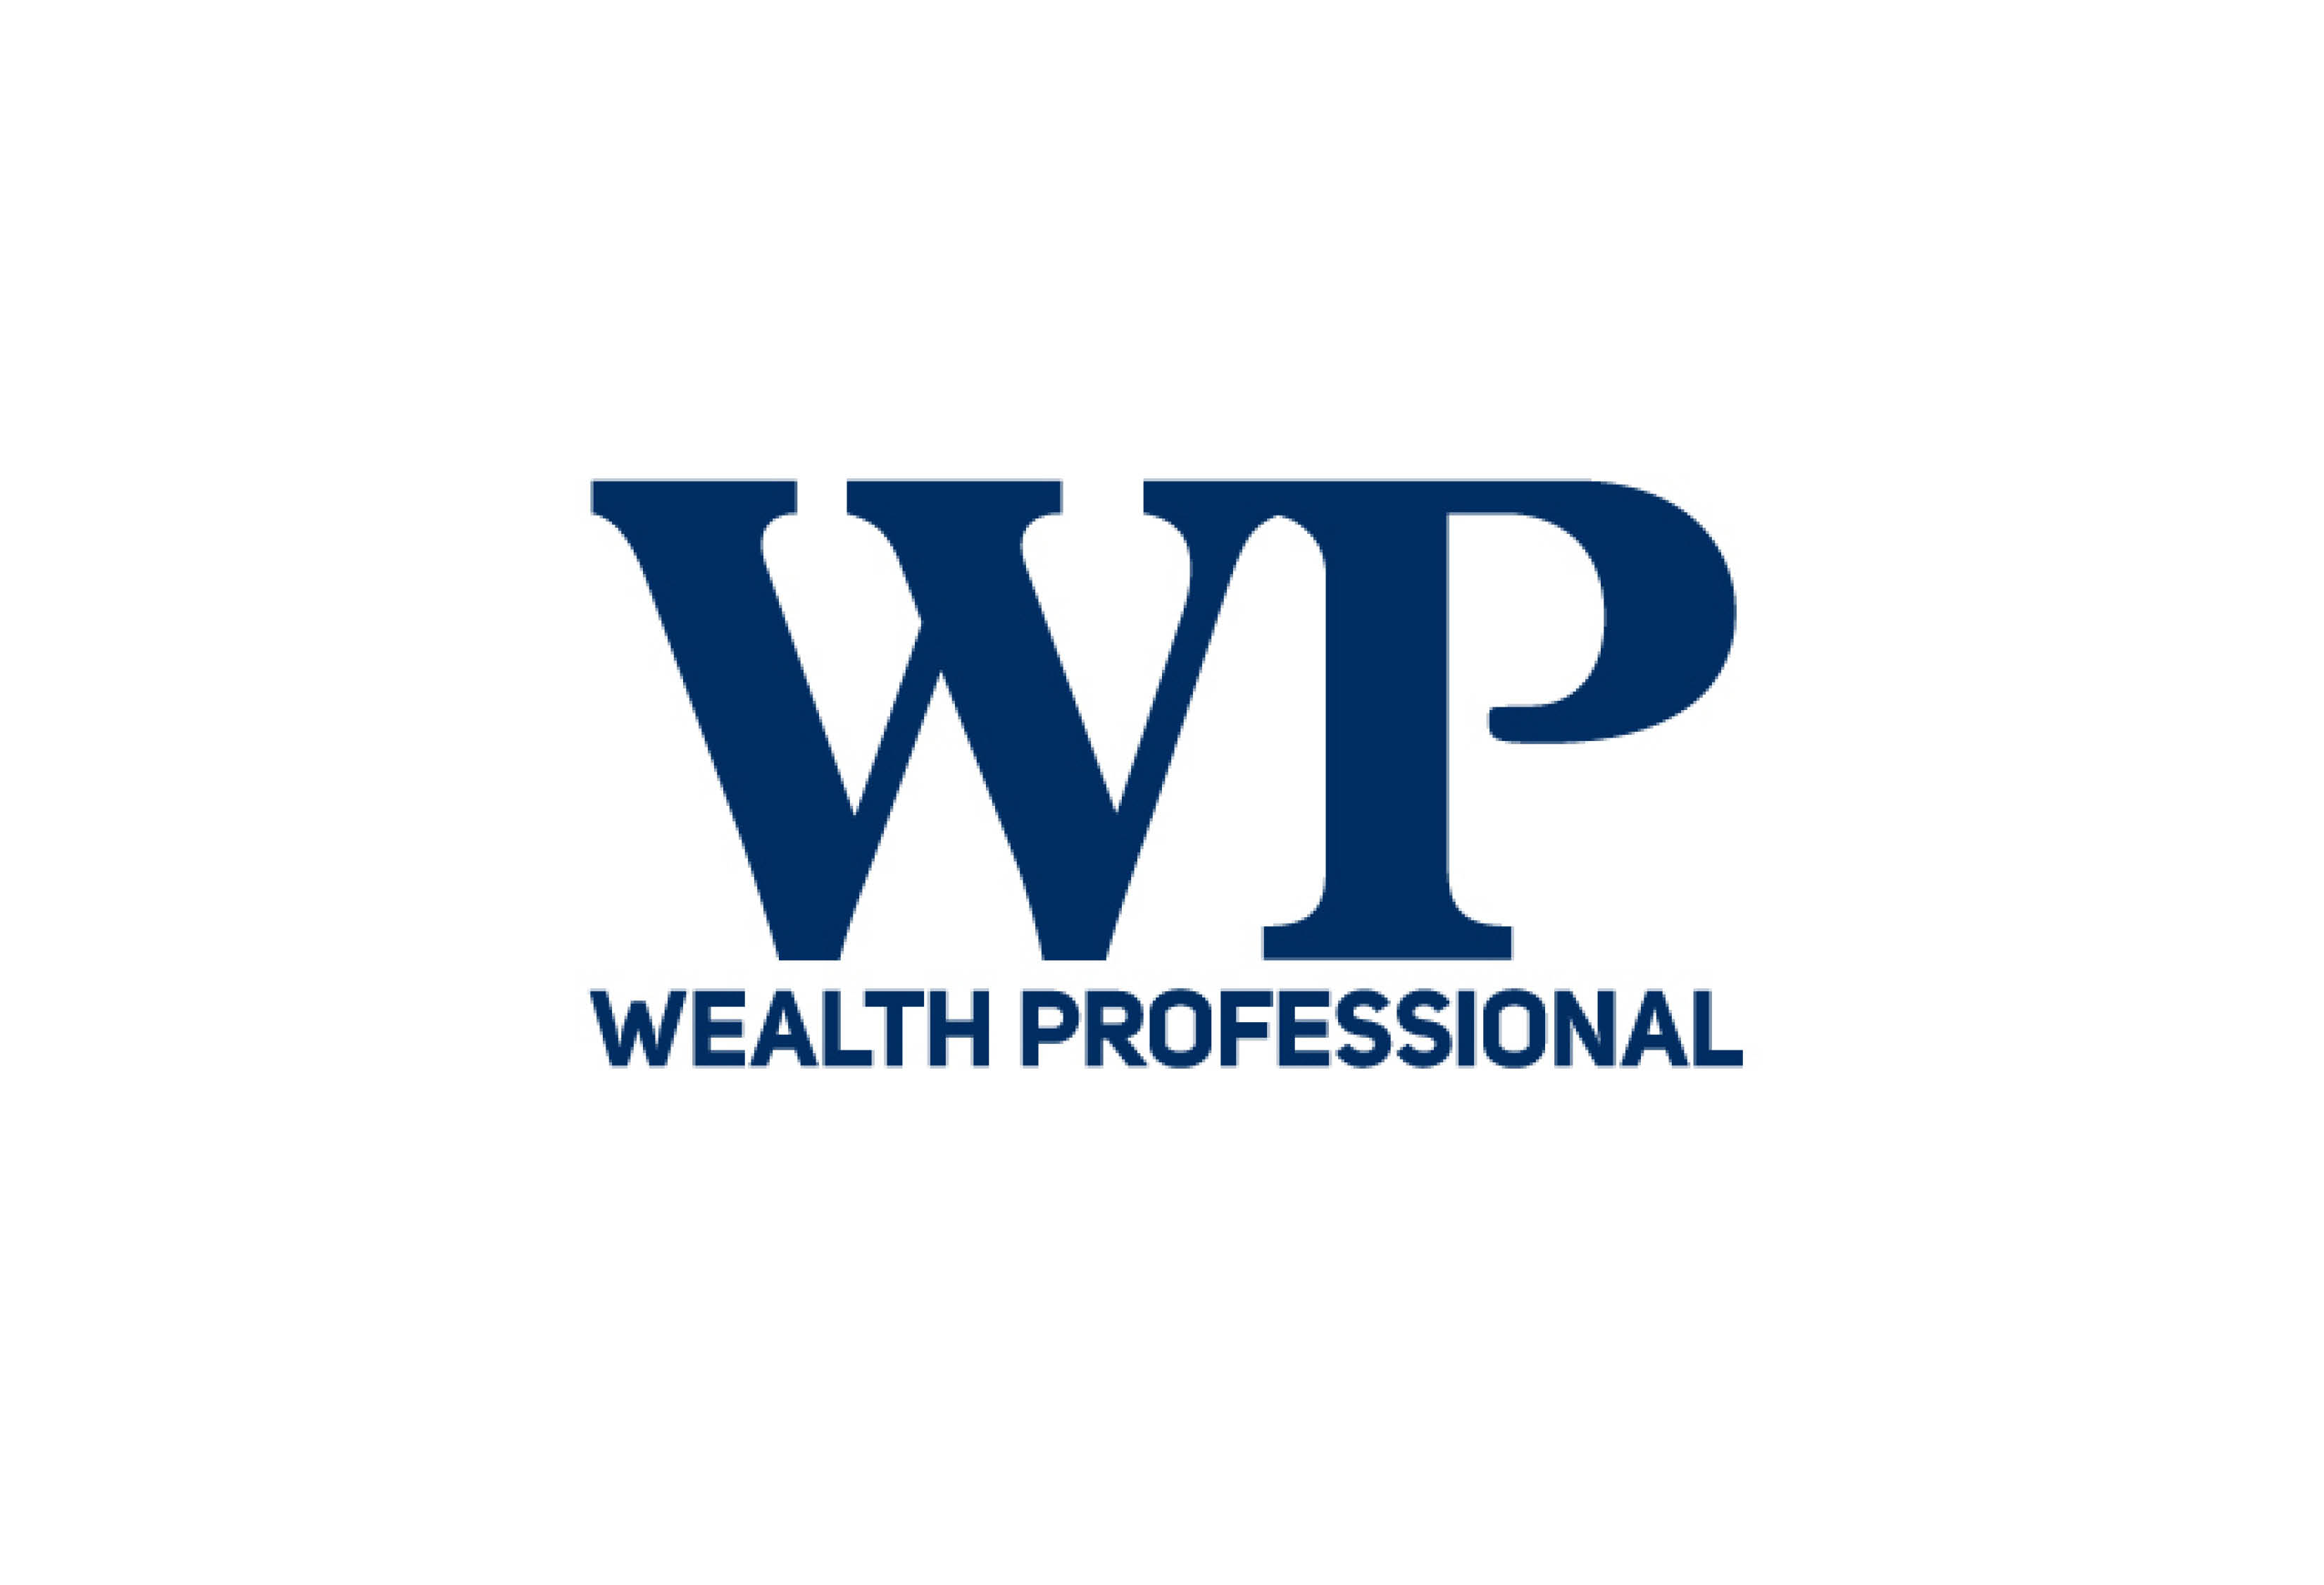 Wealth Professional: 'The only free lunch in investing is diversification'